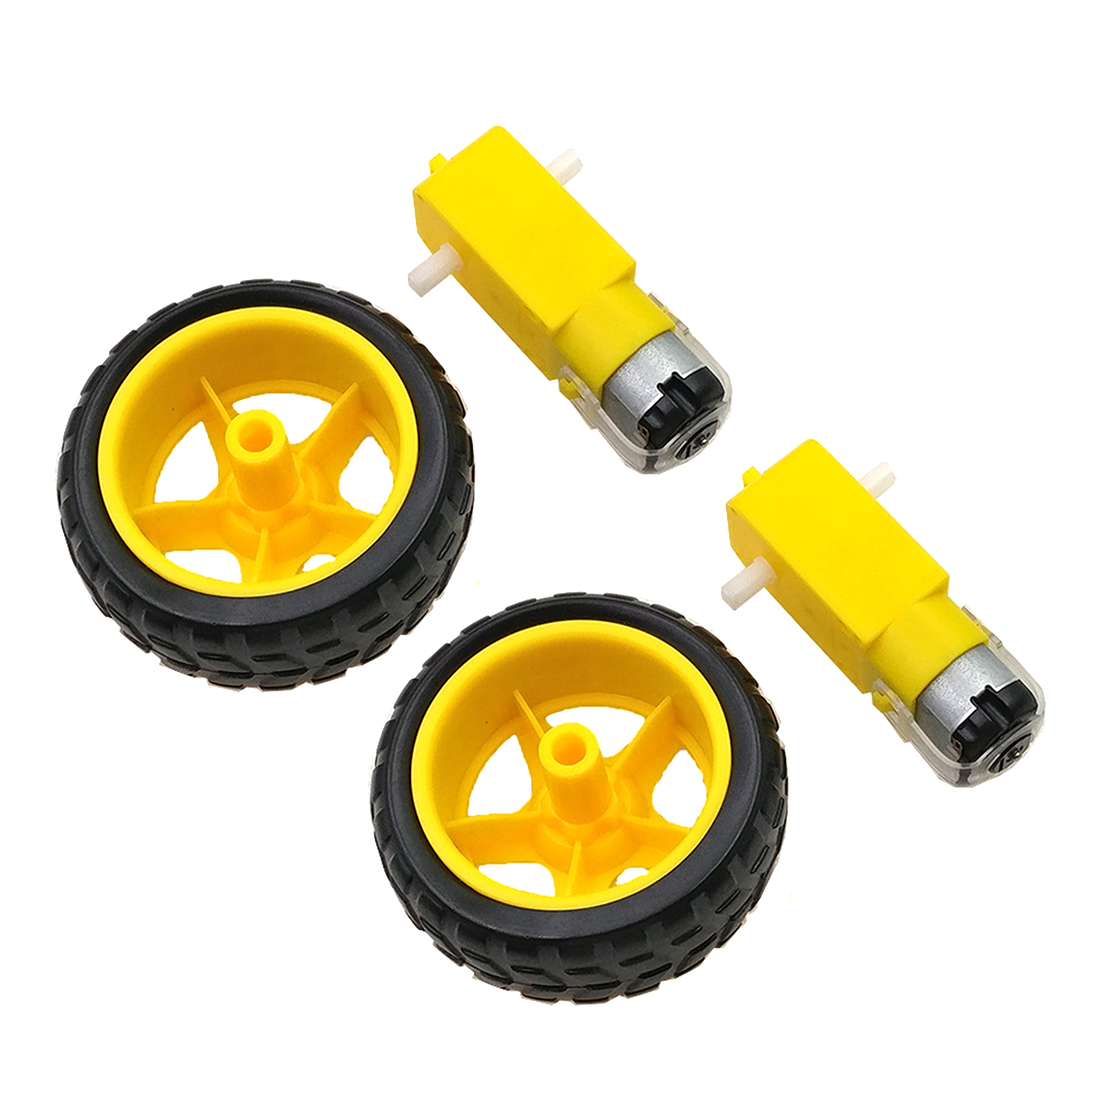 2Pcs Small Smart Car Tyres Wheel Robot Chassis Kit With DC Speed Reduction Motor Programmable Toy Part For Kids Student